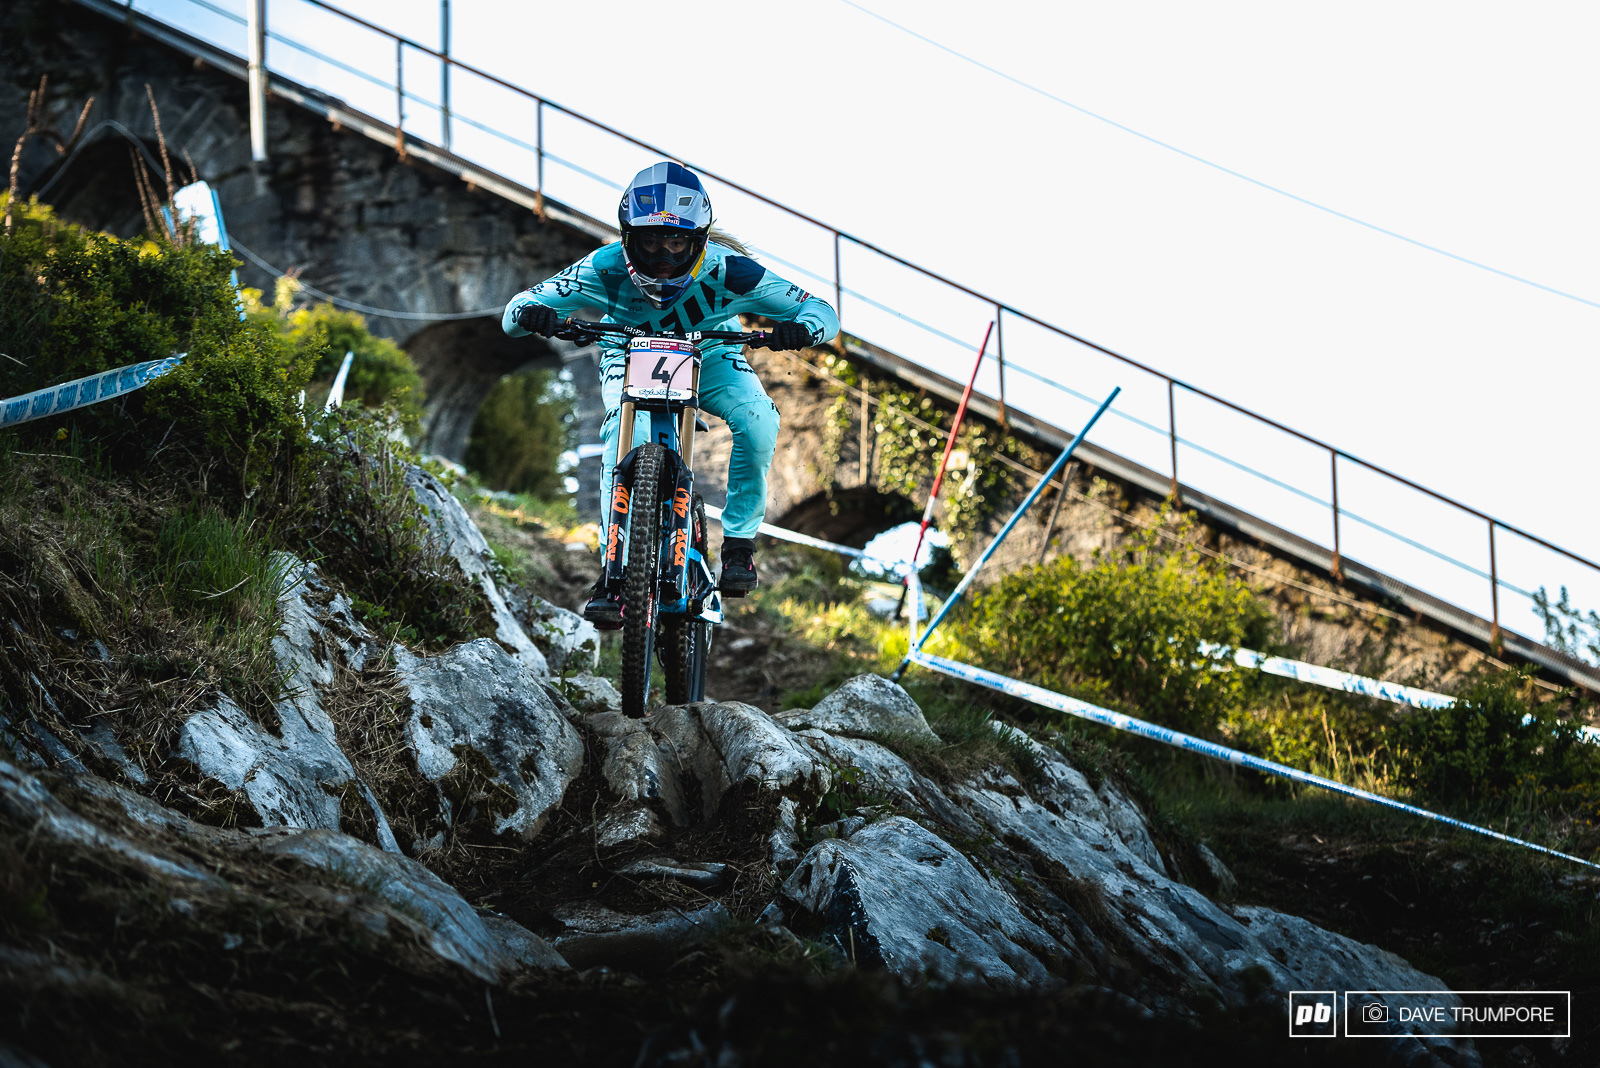 Tahnee Seagrave is super motivated this year and wants nothing more than to end Rachel Atherton s unbeaten streak.